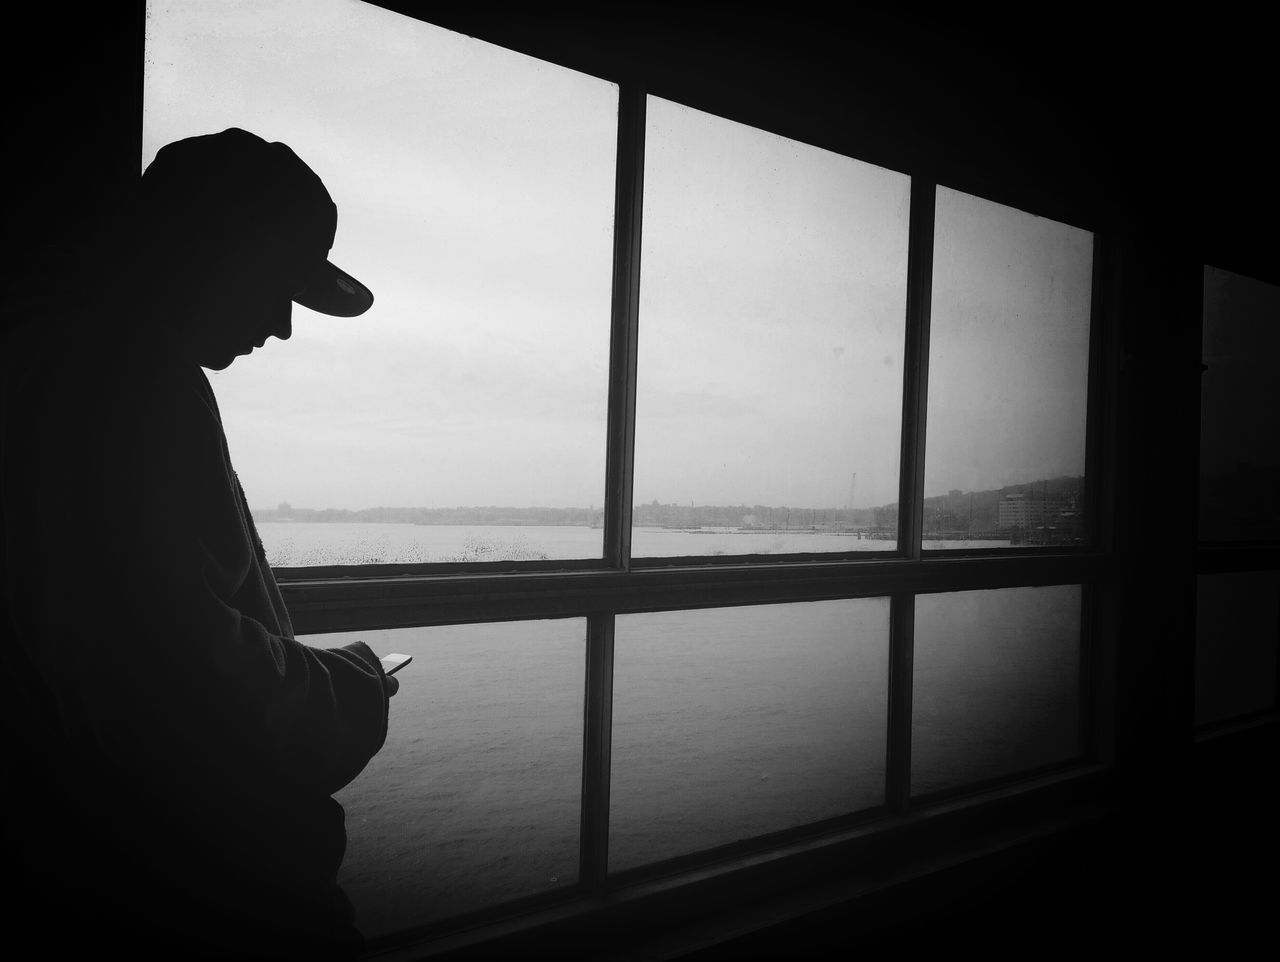 NYCImpressions Nycstrangers Monochrome My Best Photo 2014 The Moment - 2015 EyeEm Awards Traveling Home For The Holidays